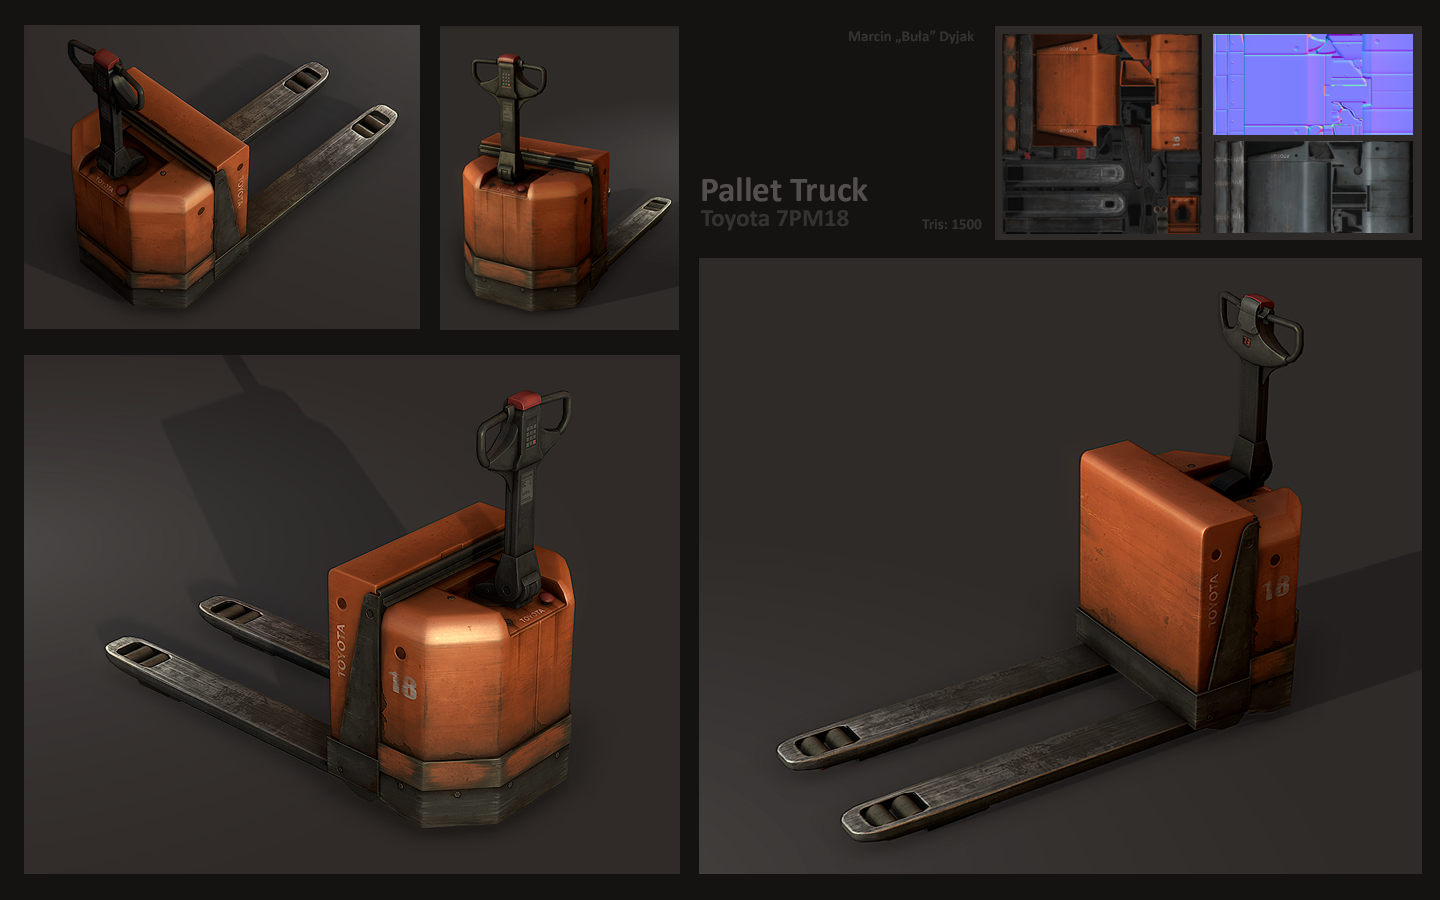 Pallet Truck Toyota 7PM18 by Bula17